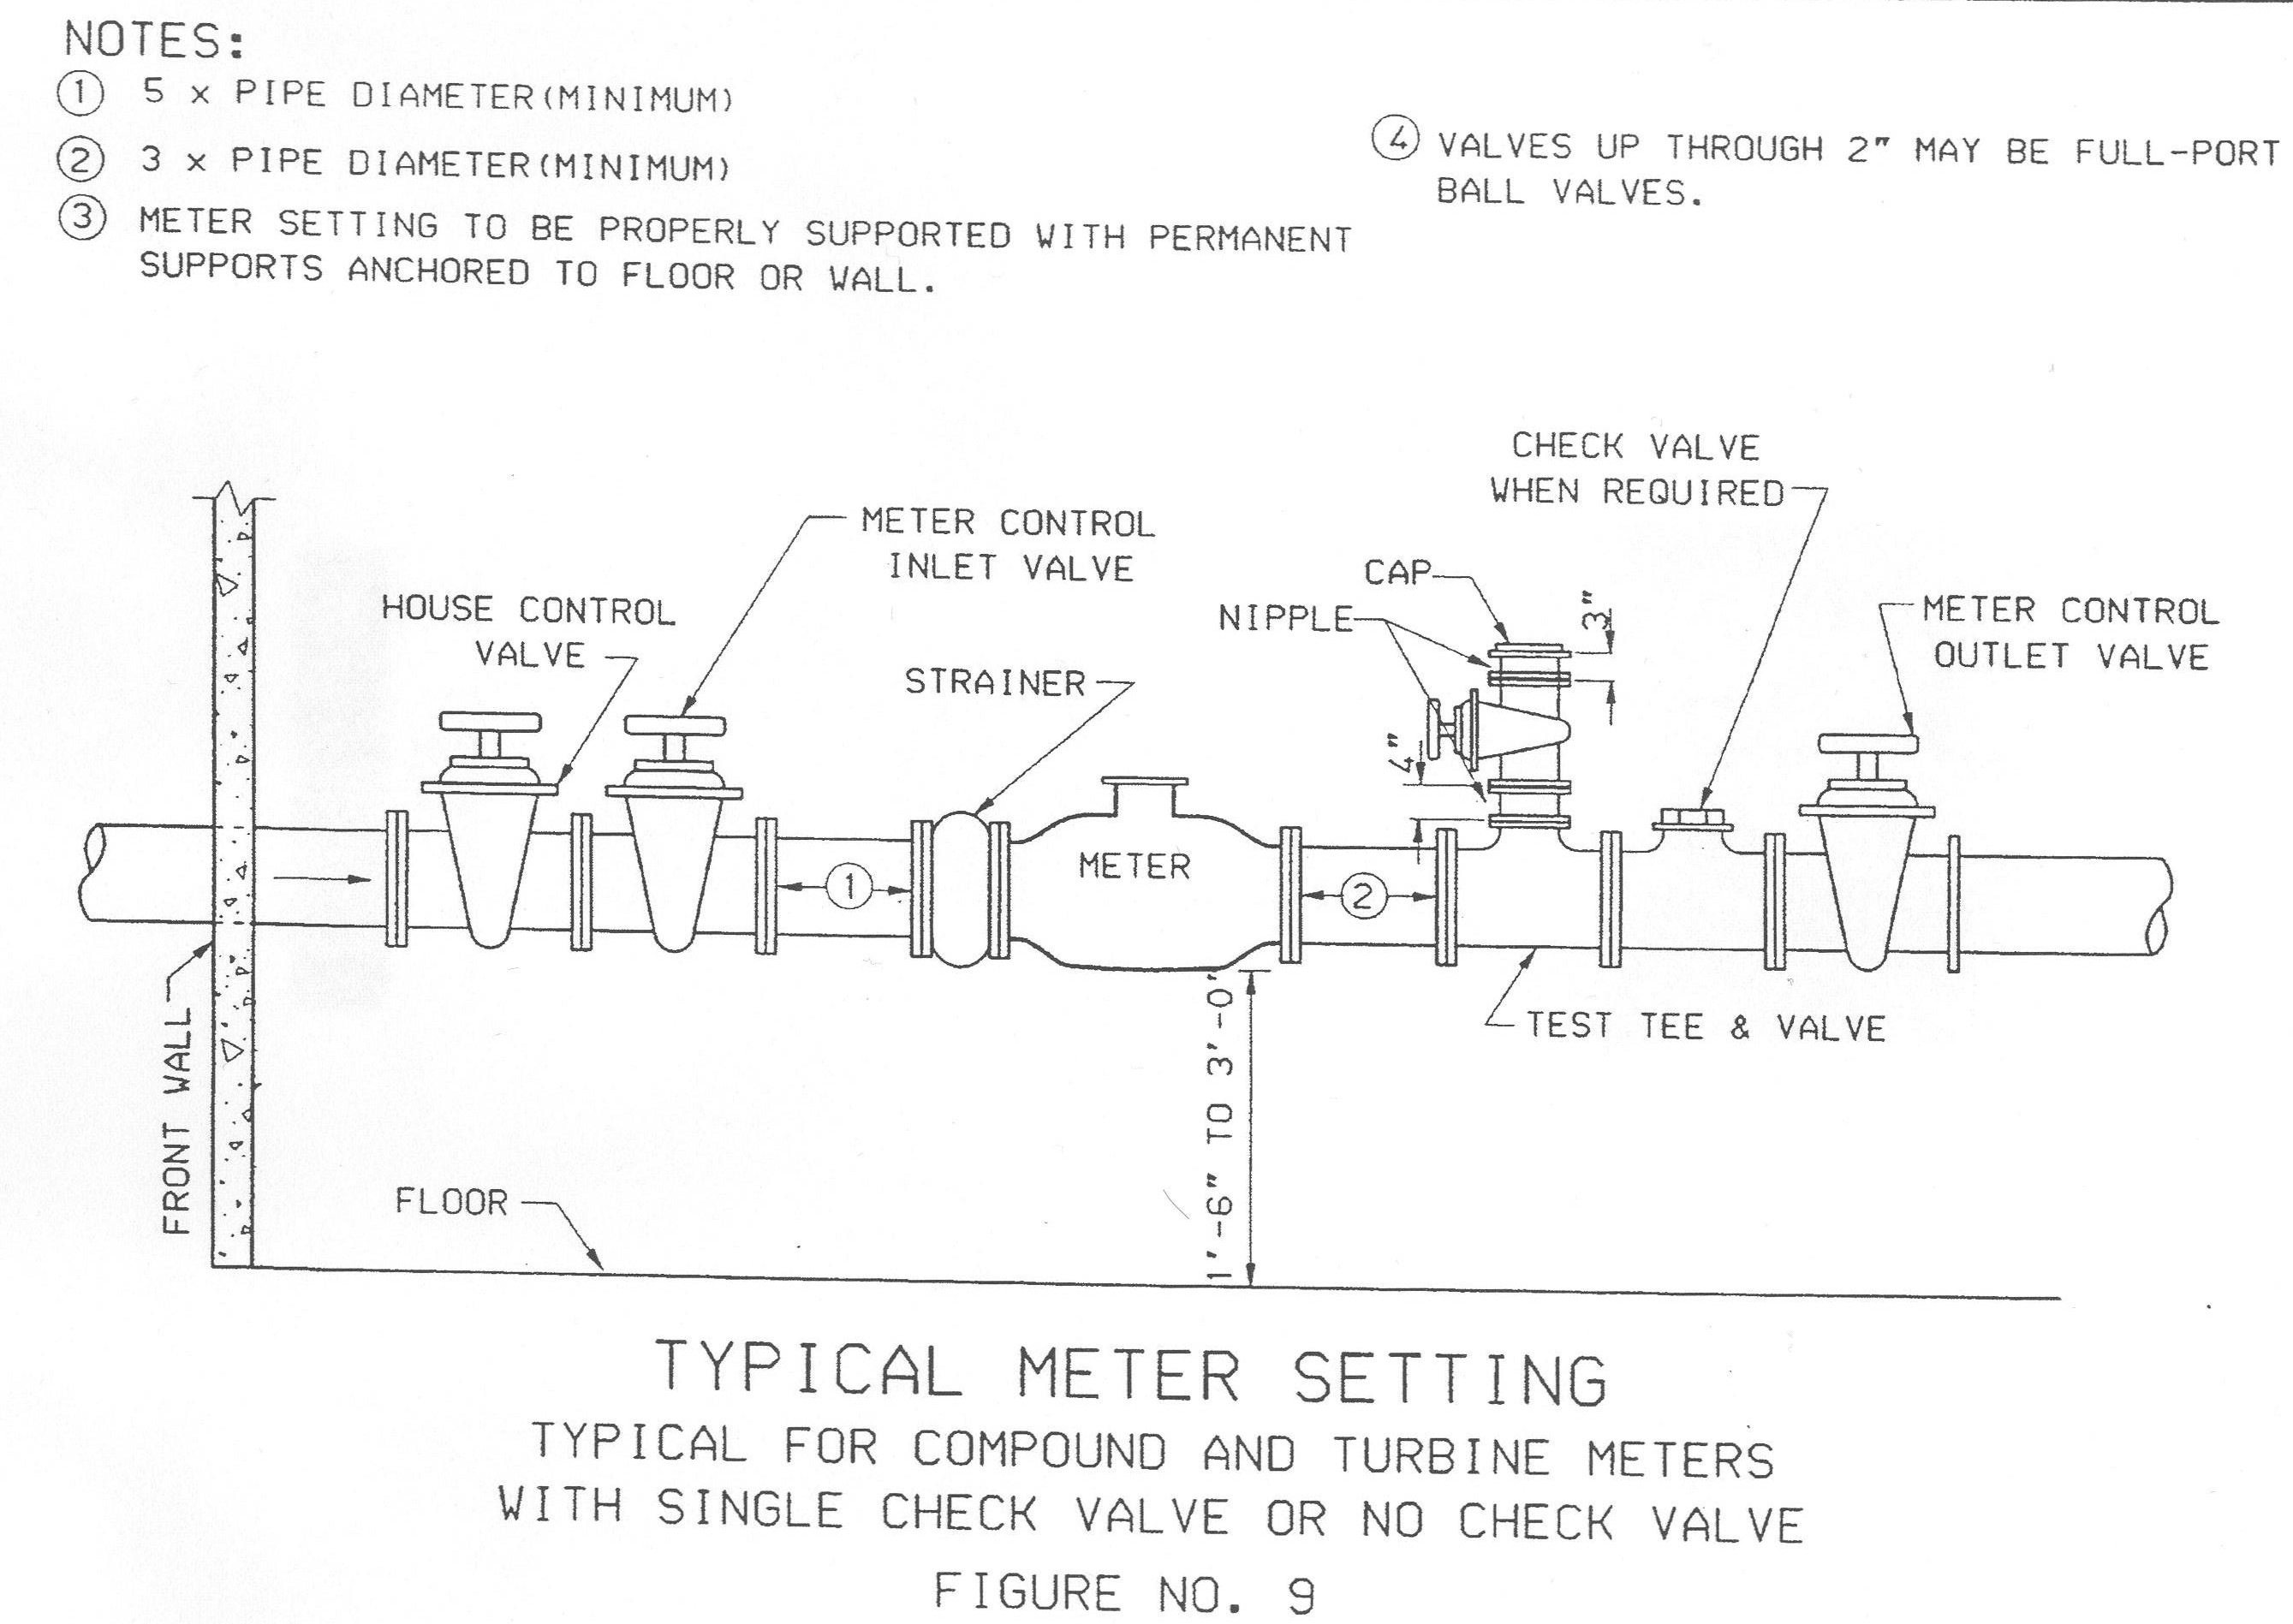 water well diagram schematic 3 phase static converter wiring a line gate valve closed improperly can break